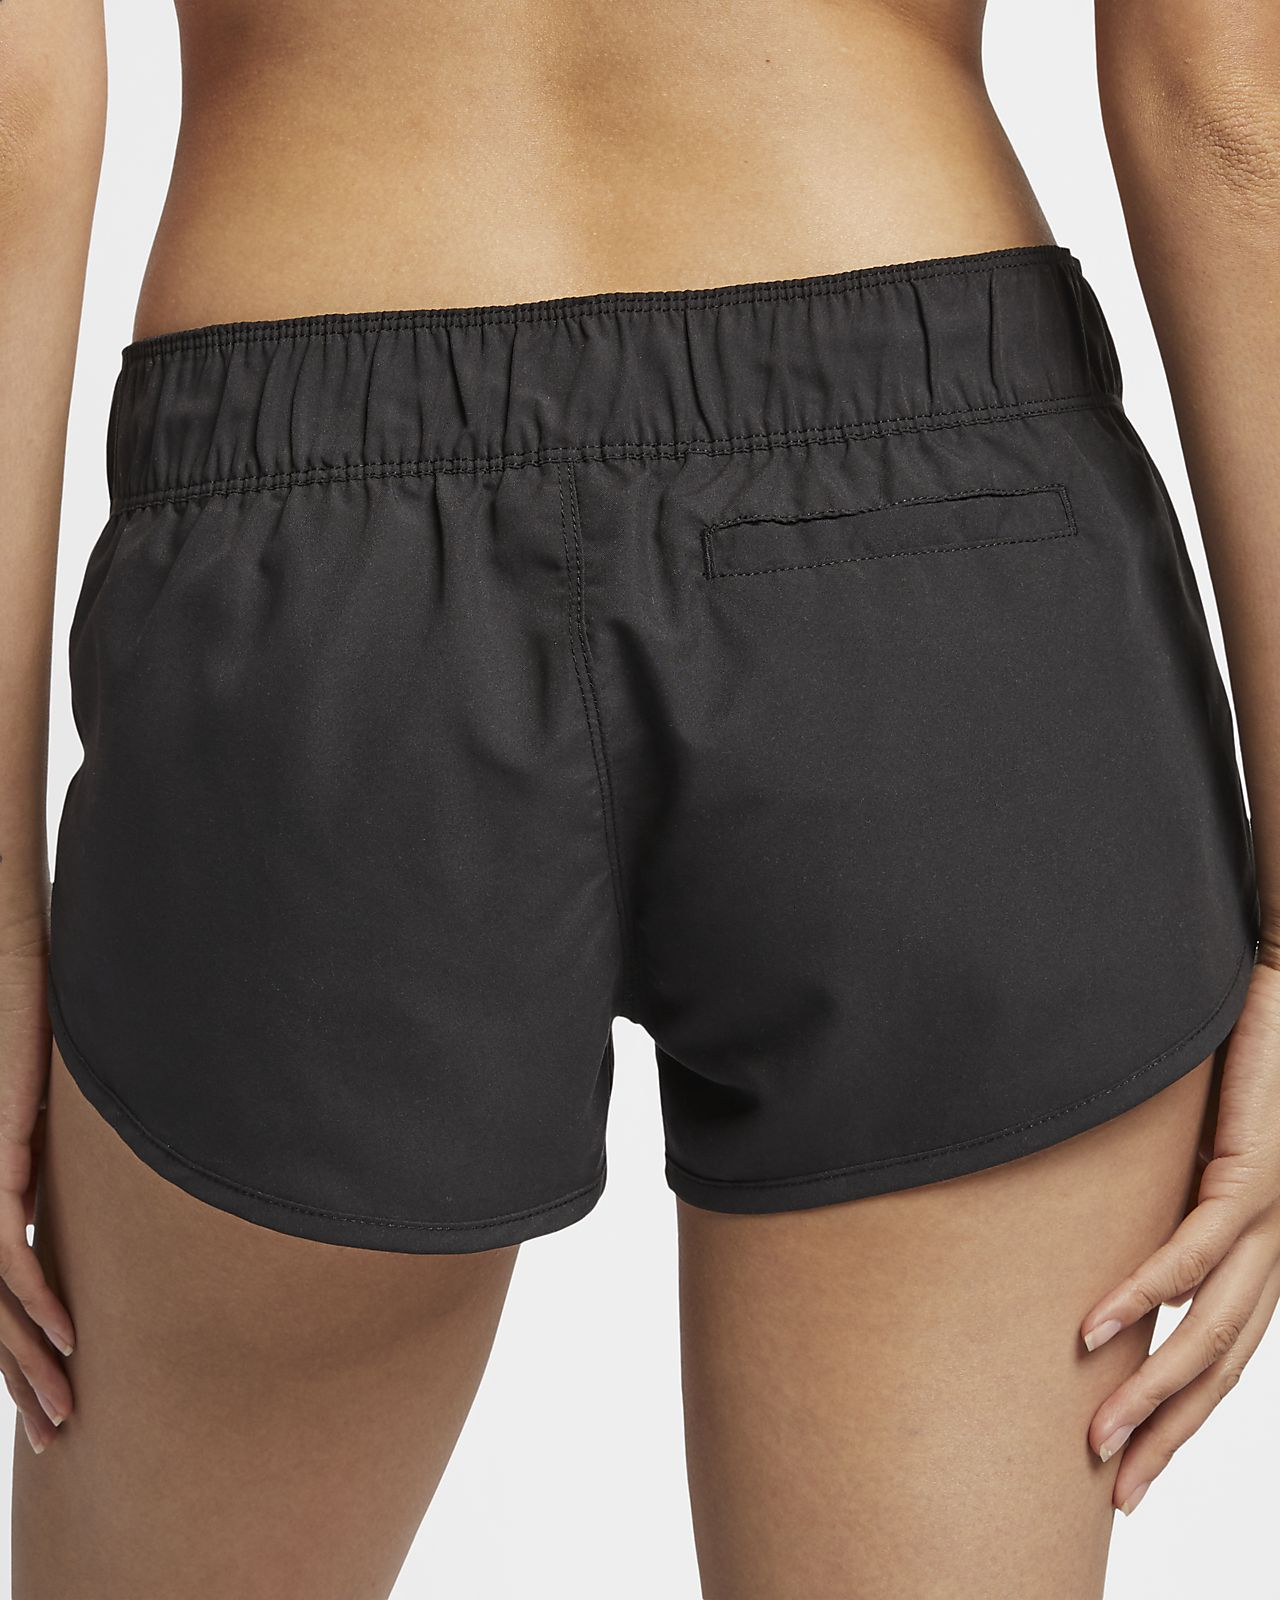 a2f344f312f602 Hurley Supersuede Beachrider Women's Board Shorts. Nike.com